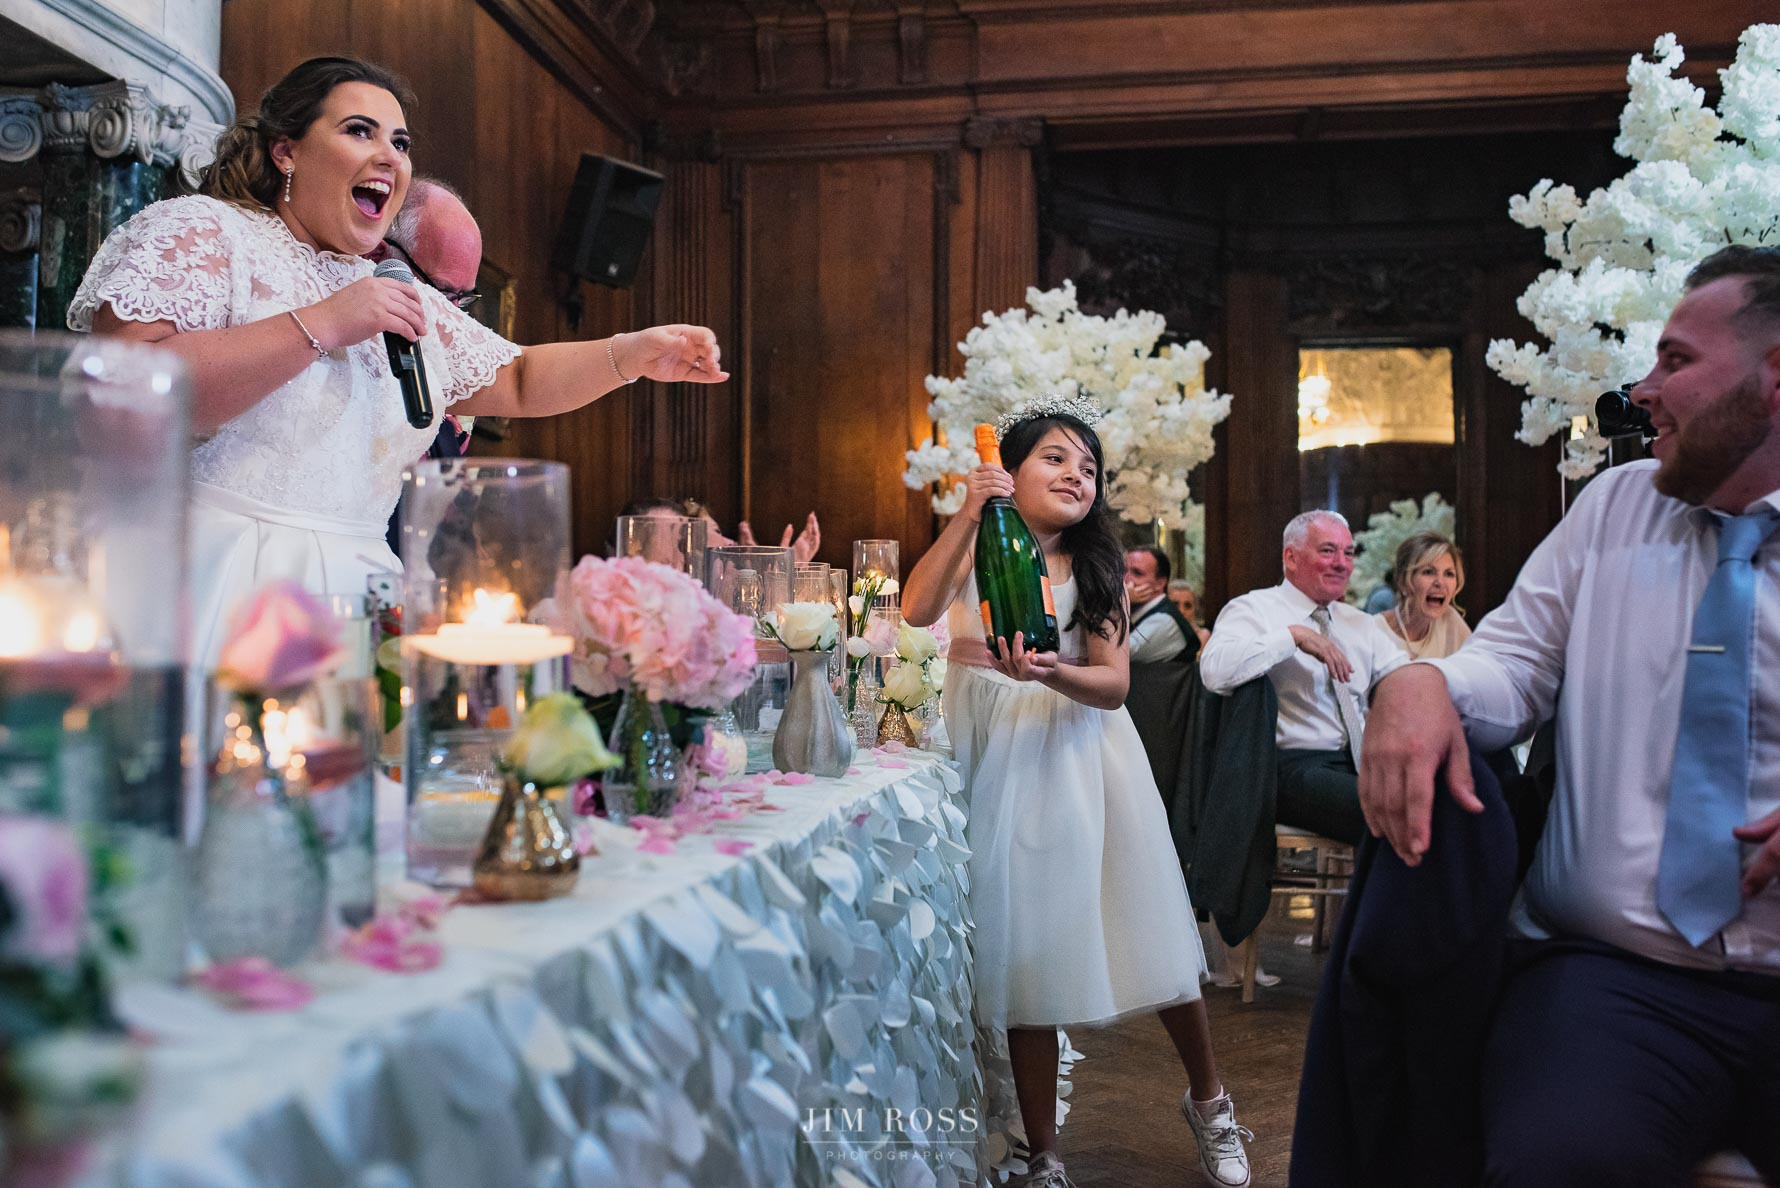 Bride takes a turn at speeches